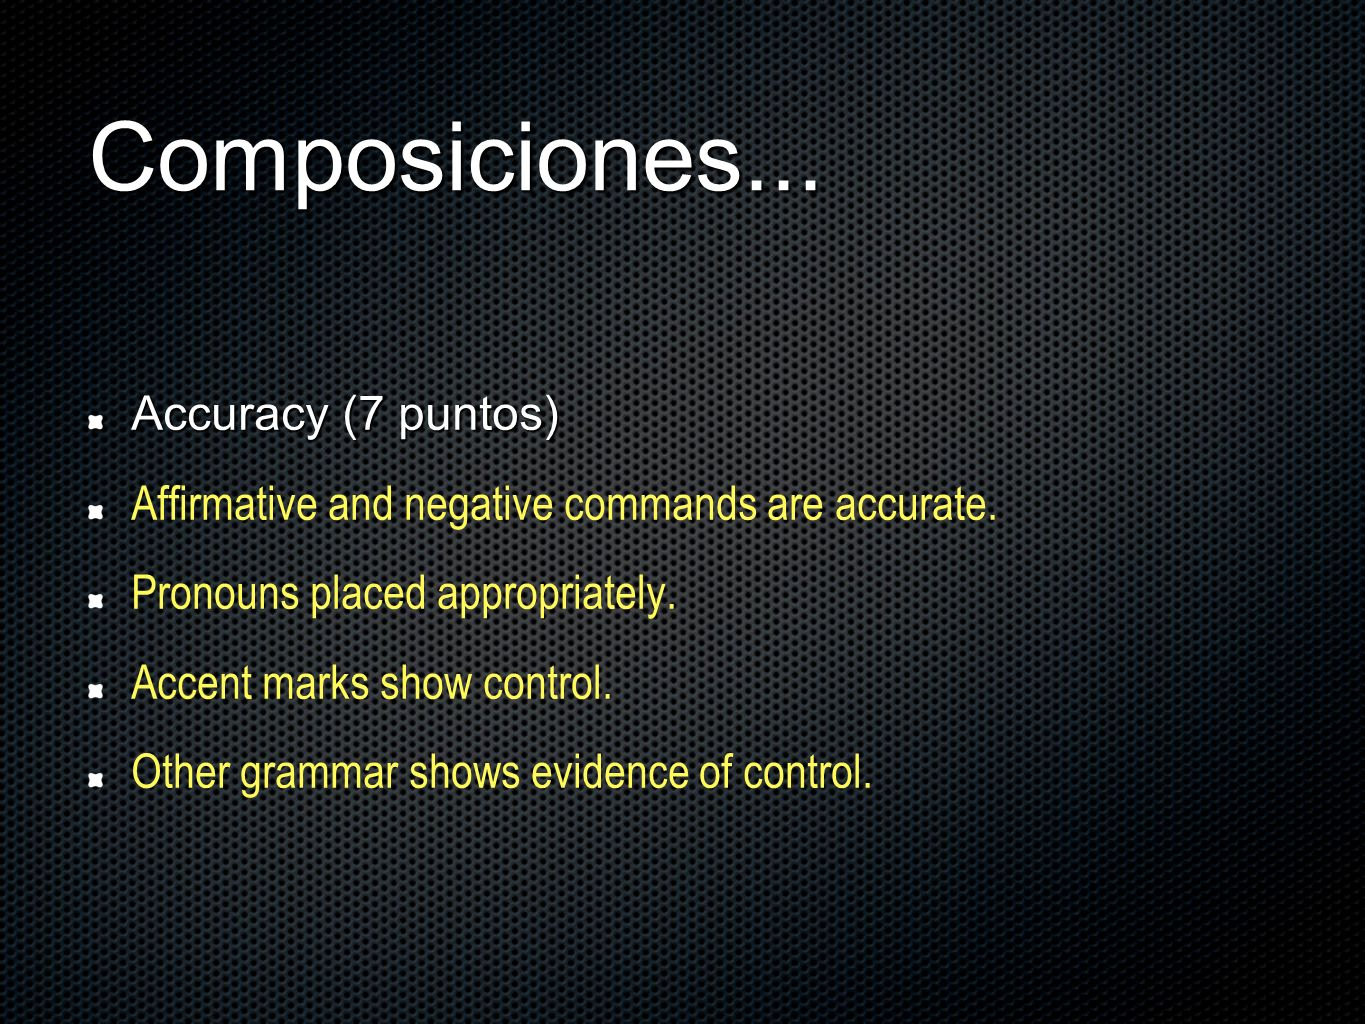 Composiciones... Accuracy (7 puntos)